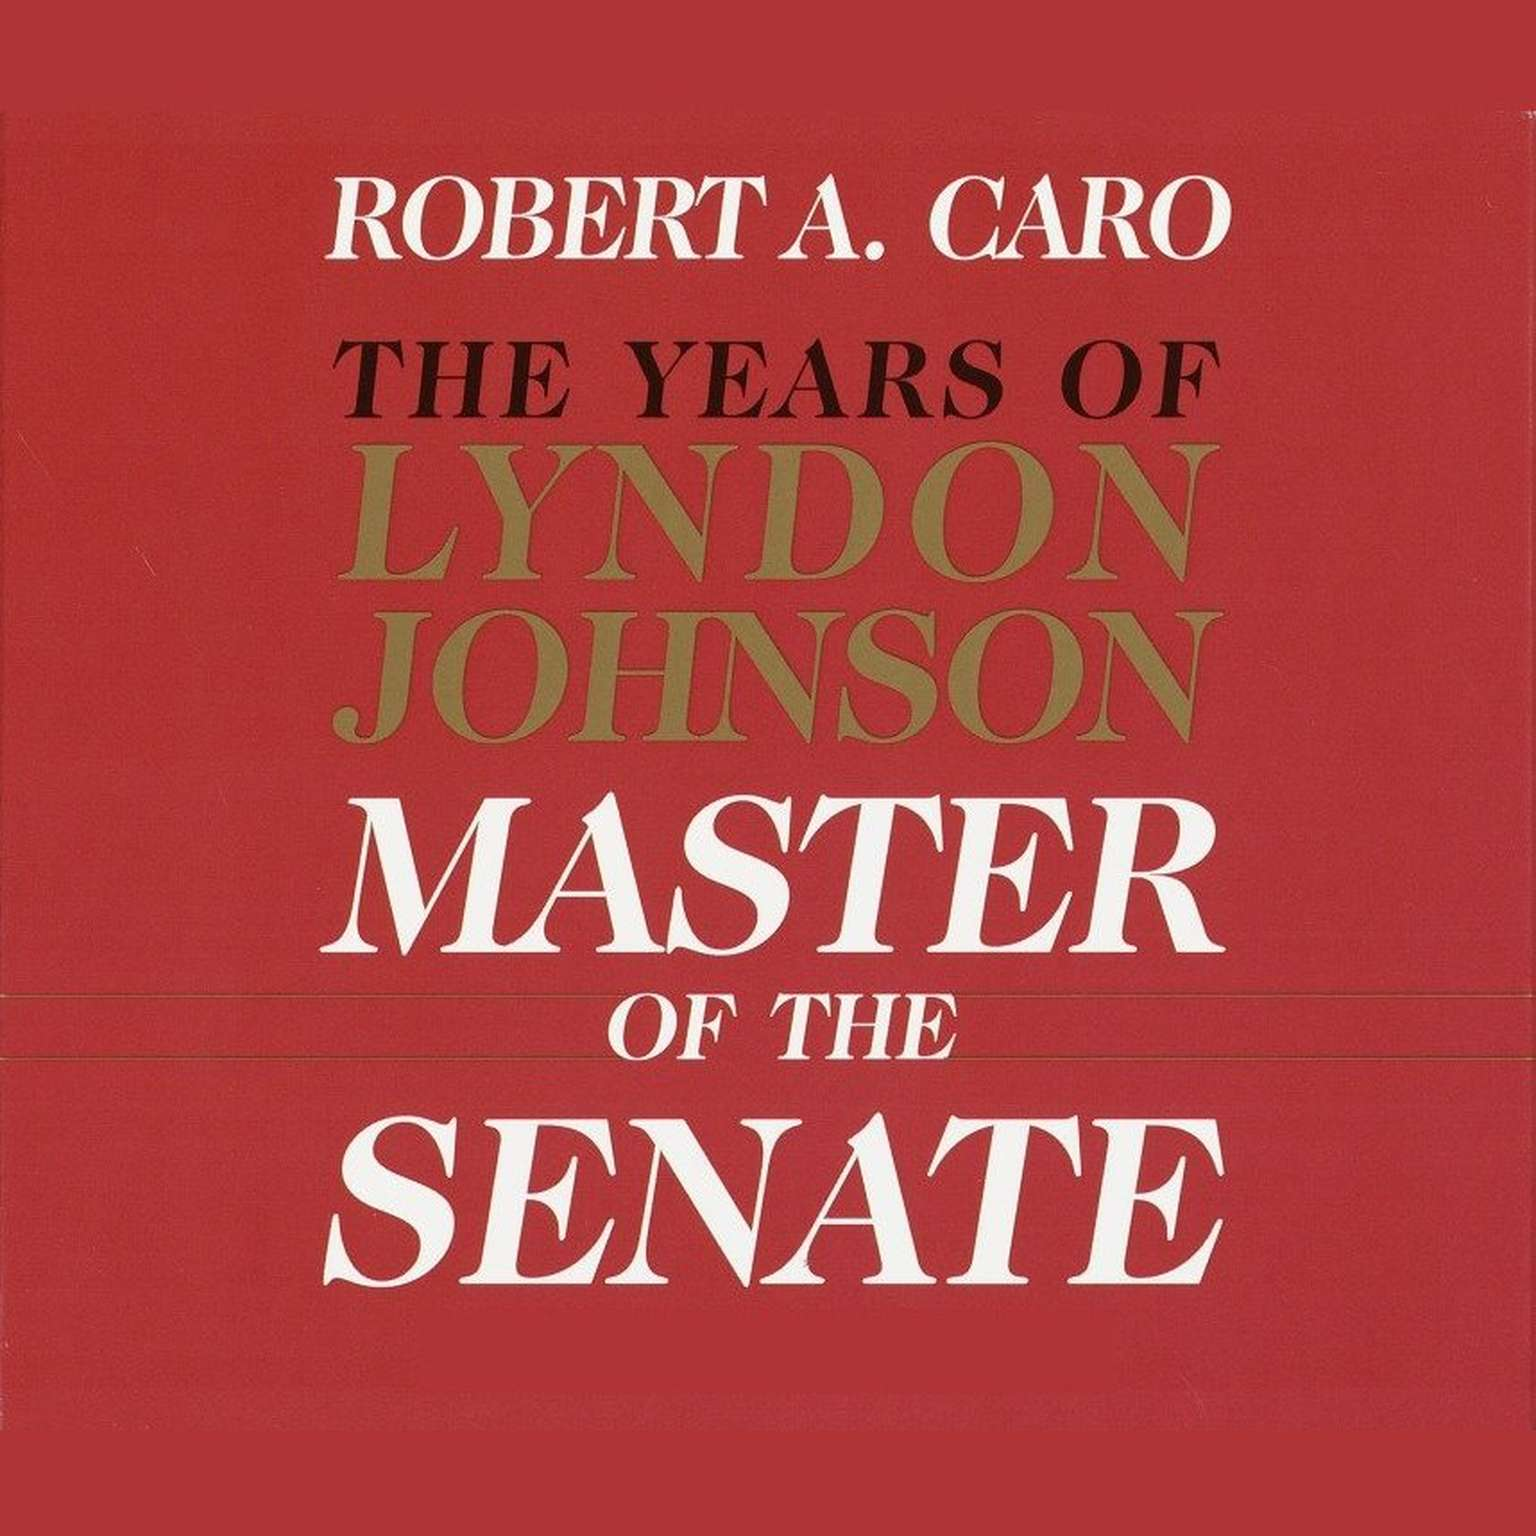 Printable Master of the Senate: The Years of Lyndon Johnson, Volume III (Part 3 of a 3-Part Recording) Audiobook Cover Art